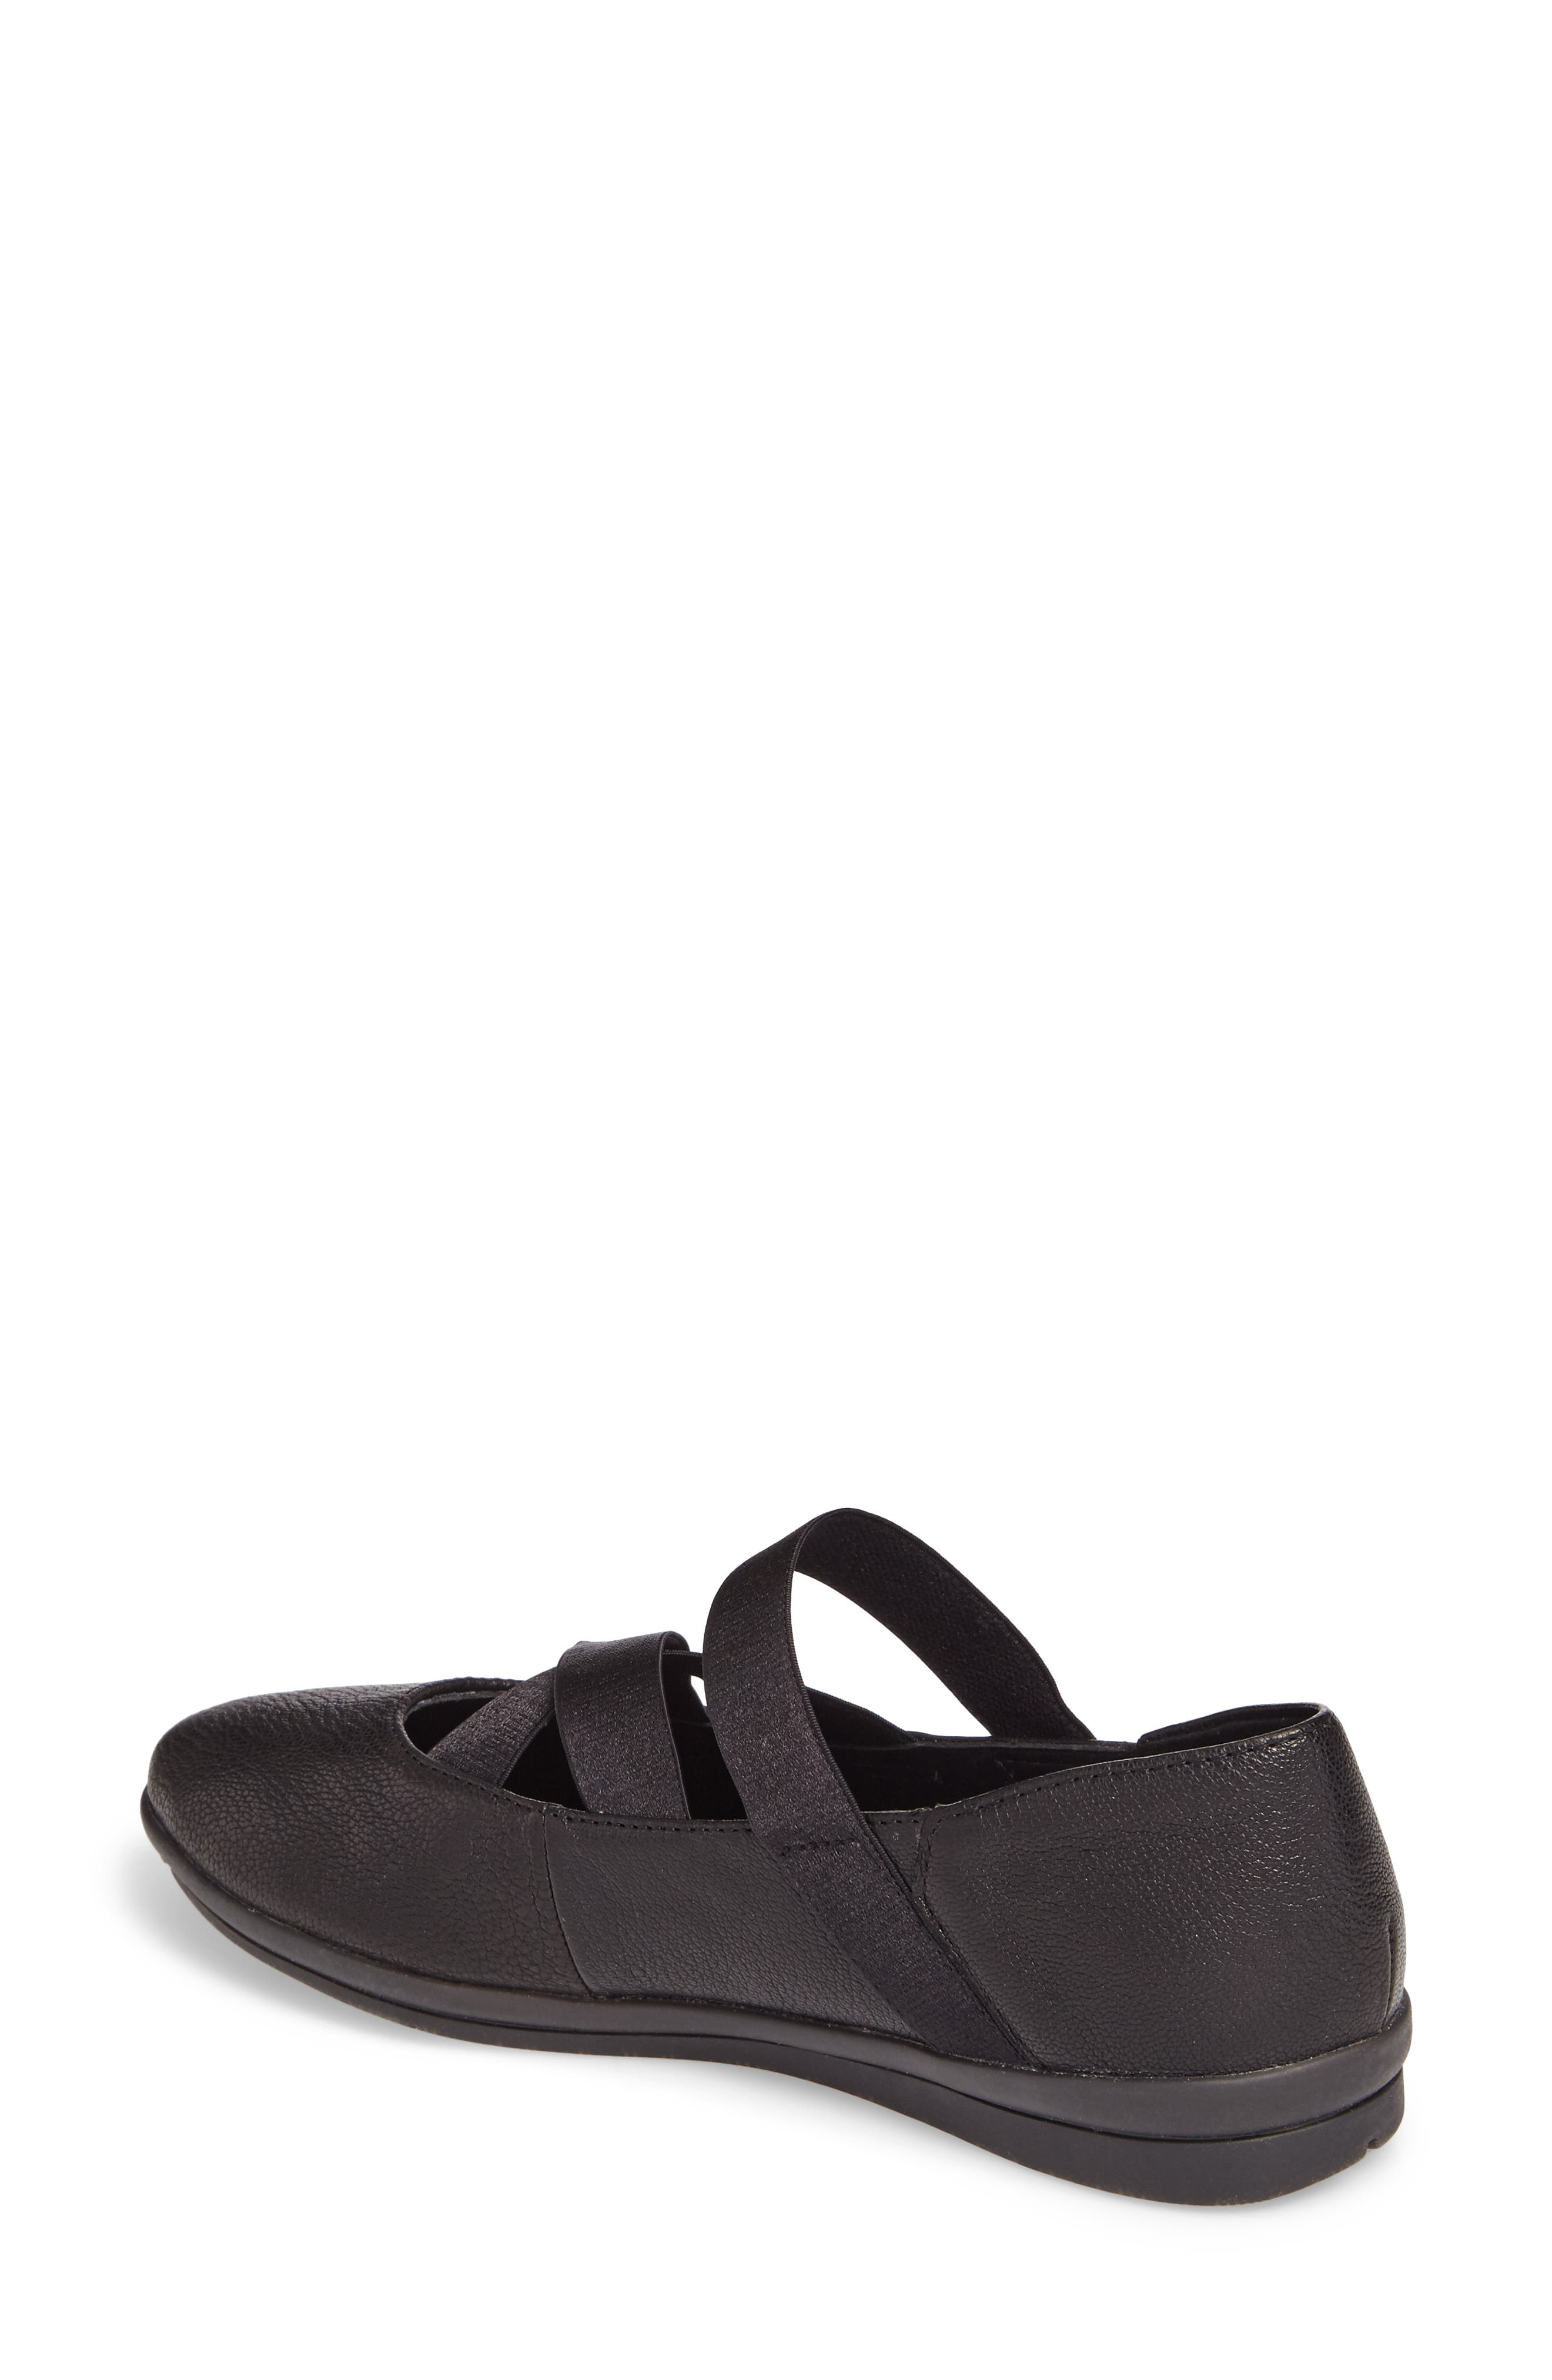 Meree Madrine Cross Strap Flat,                             Alternate thumbnail 8, color,